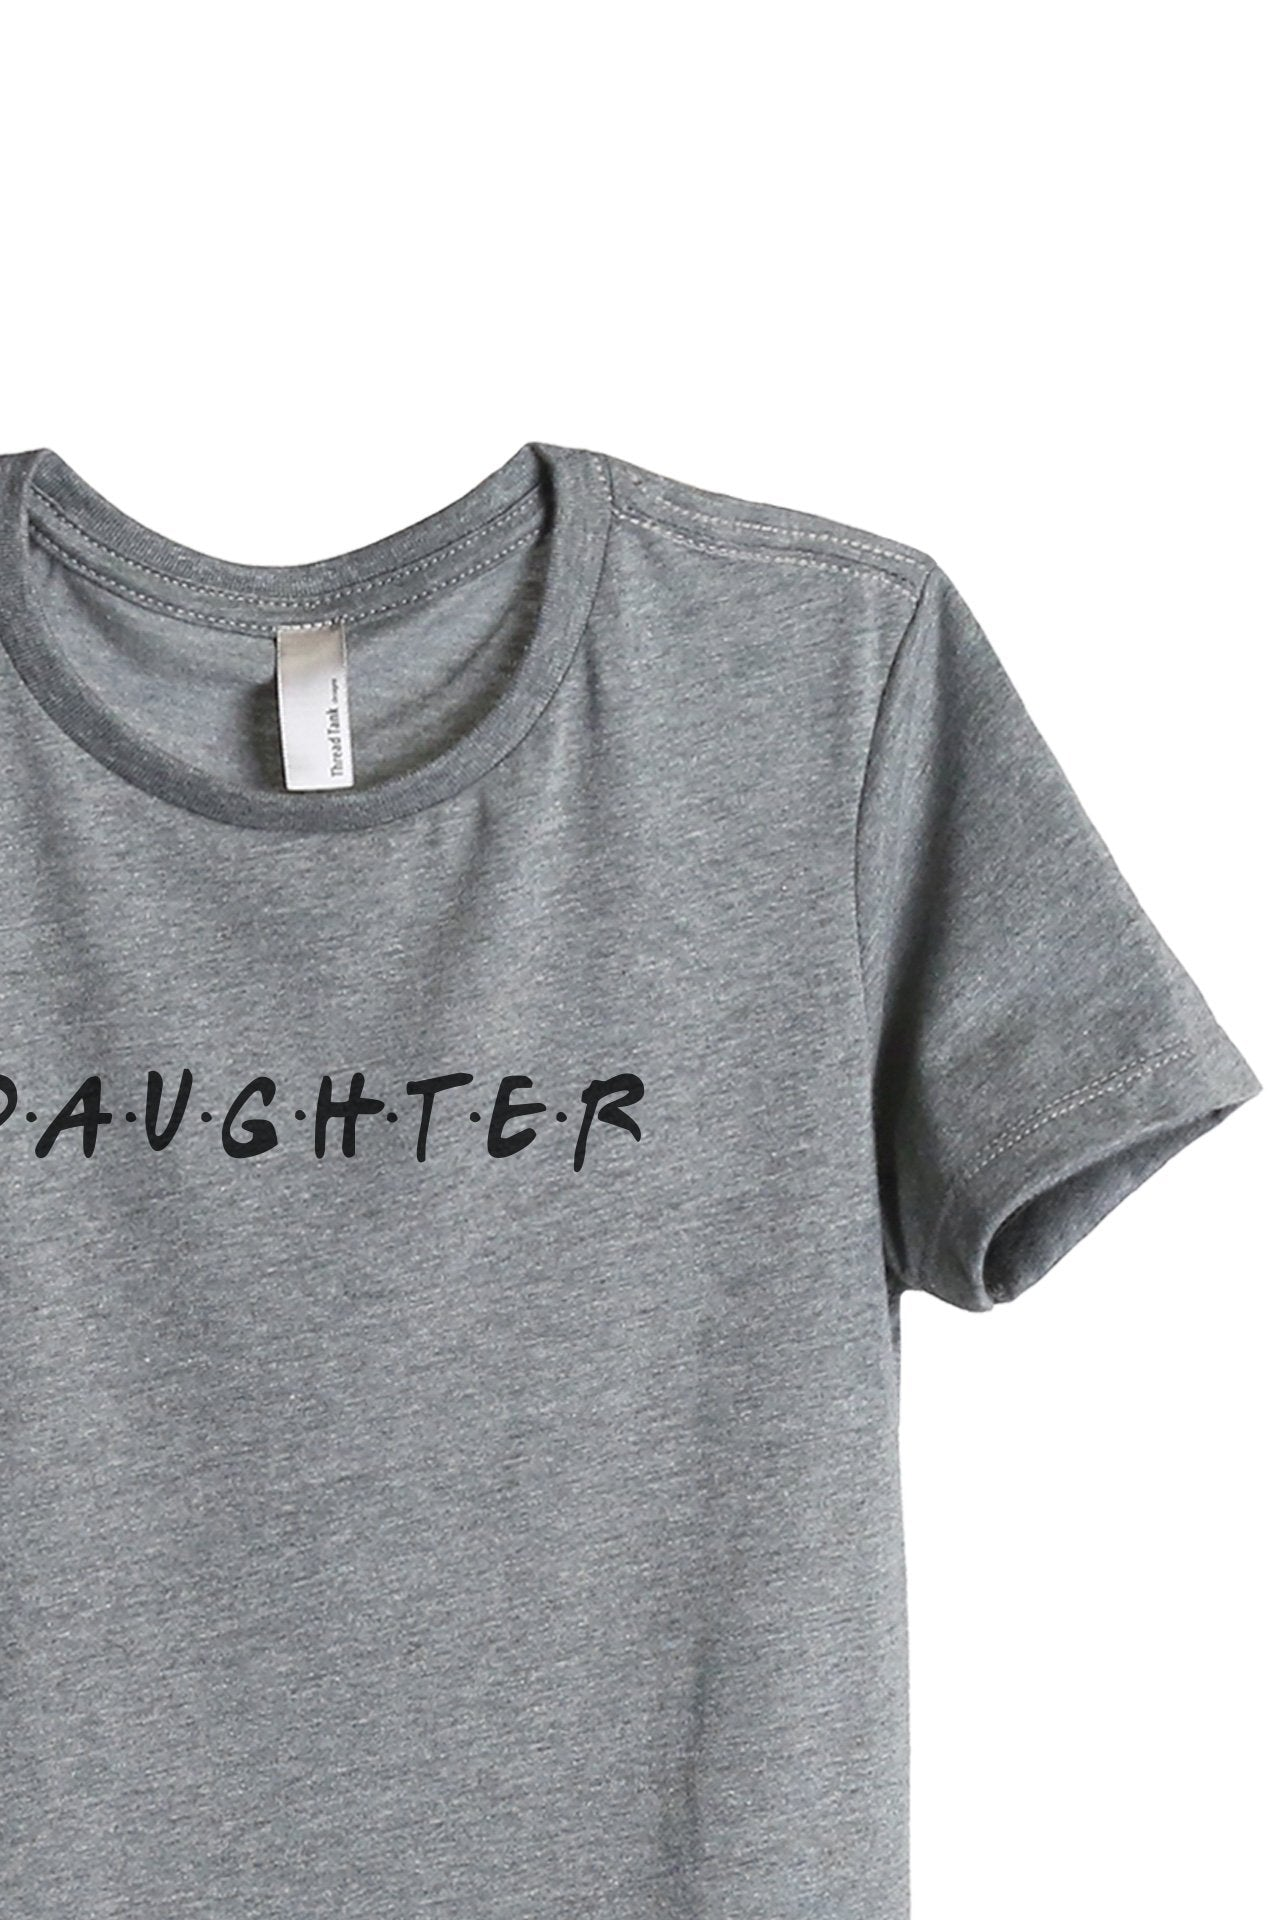 Daughter Friends - Thread Tank | Stories You Can Wear | T-Shirts, Tank Tops and Sweatshirts